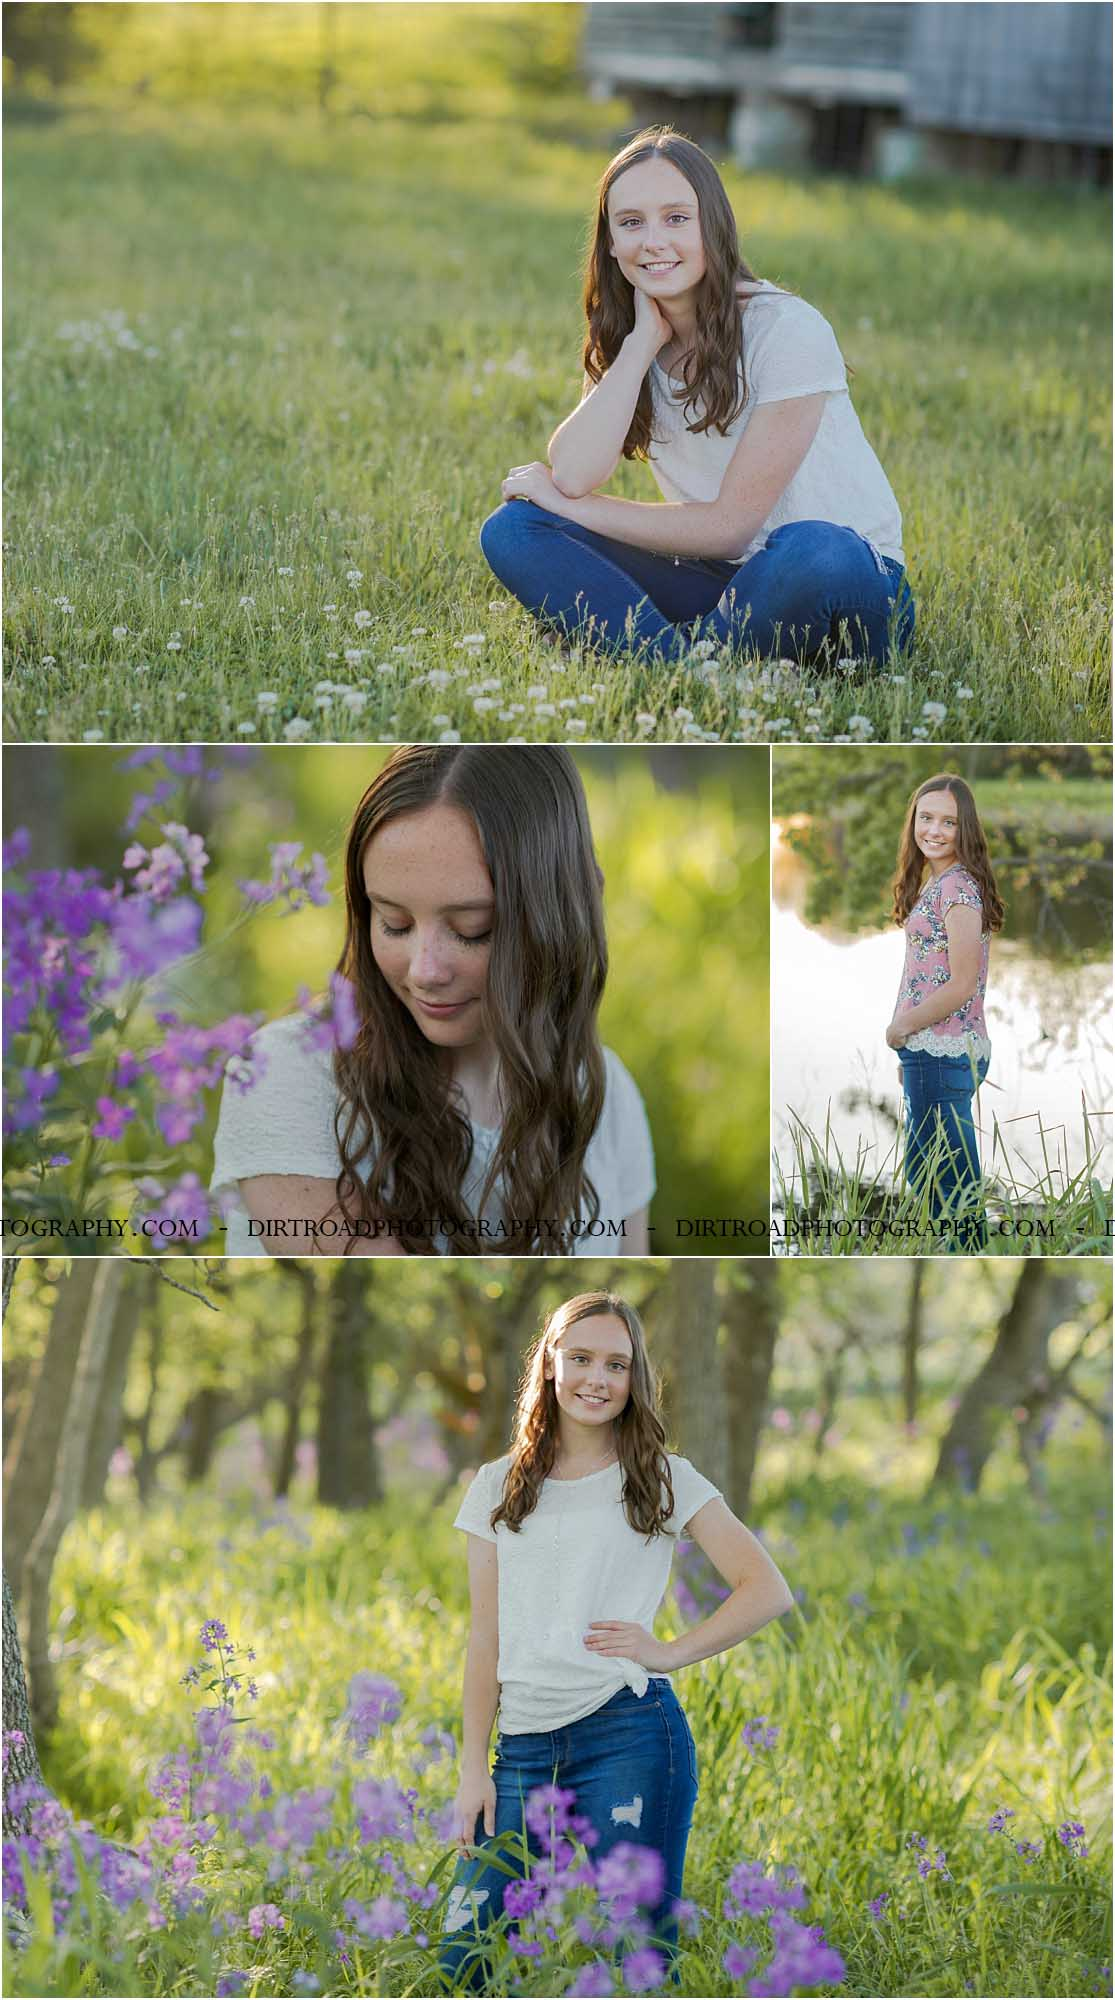 images of high school girl senior photos named shelby timmerman of clatonia nebraska who went to wilber-clatonia high school in nebraska and is part of the class of 2020. photos were taken near swanton nebraska in saline county. photo includes purple spring flowers at sunset with girl in white fitted shirt with knot tied on the side and jeans standing in tall natural grass with trees surrounding her. teen has curly long brown hair. photos taken at sunset near water and farm pond. photographer is kelsey homolka nerud of wilber nebraska who specializes in high school senior photography and senior pictures.